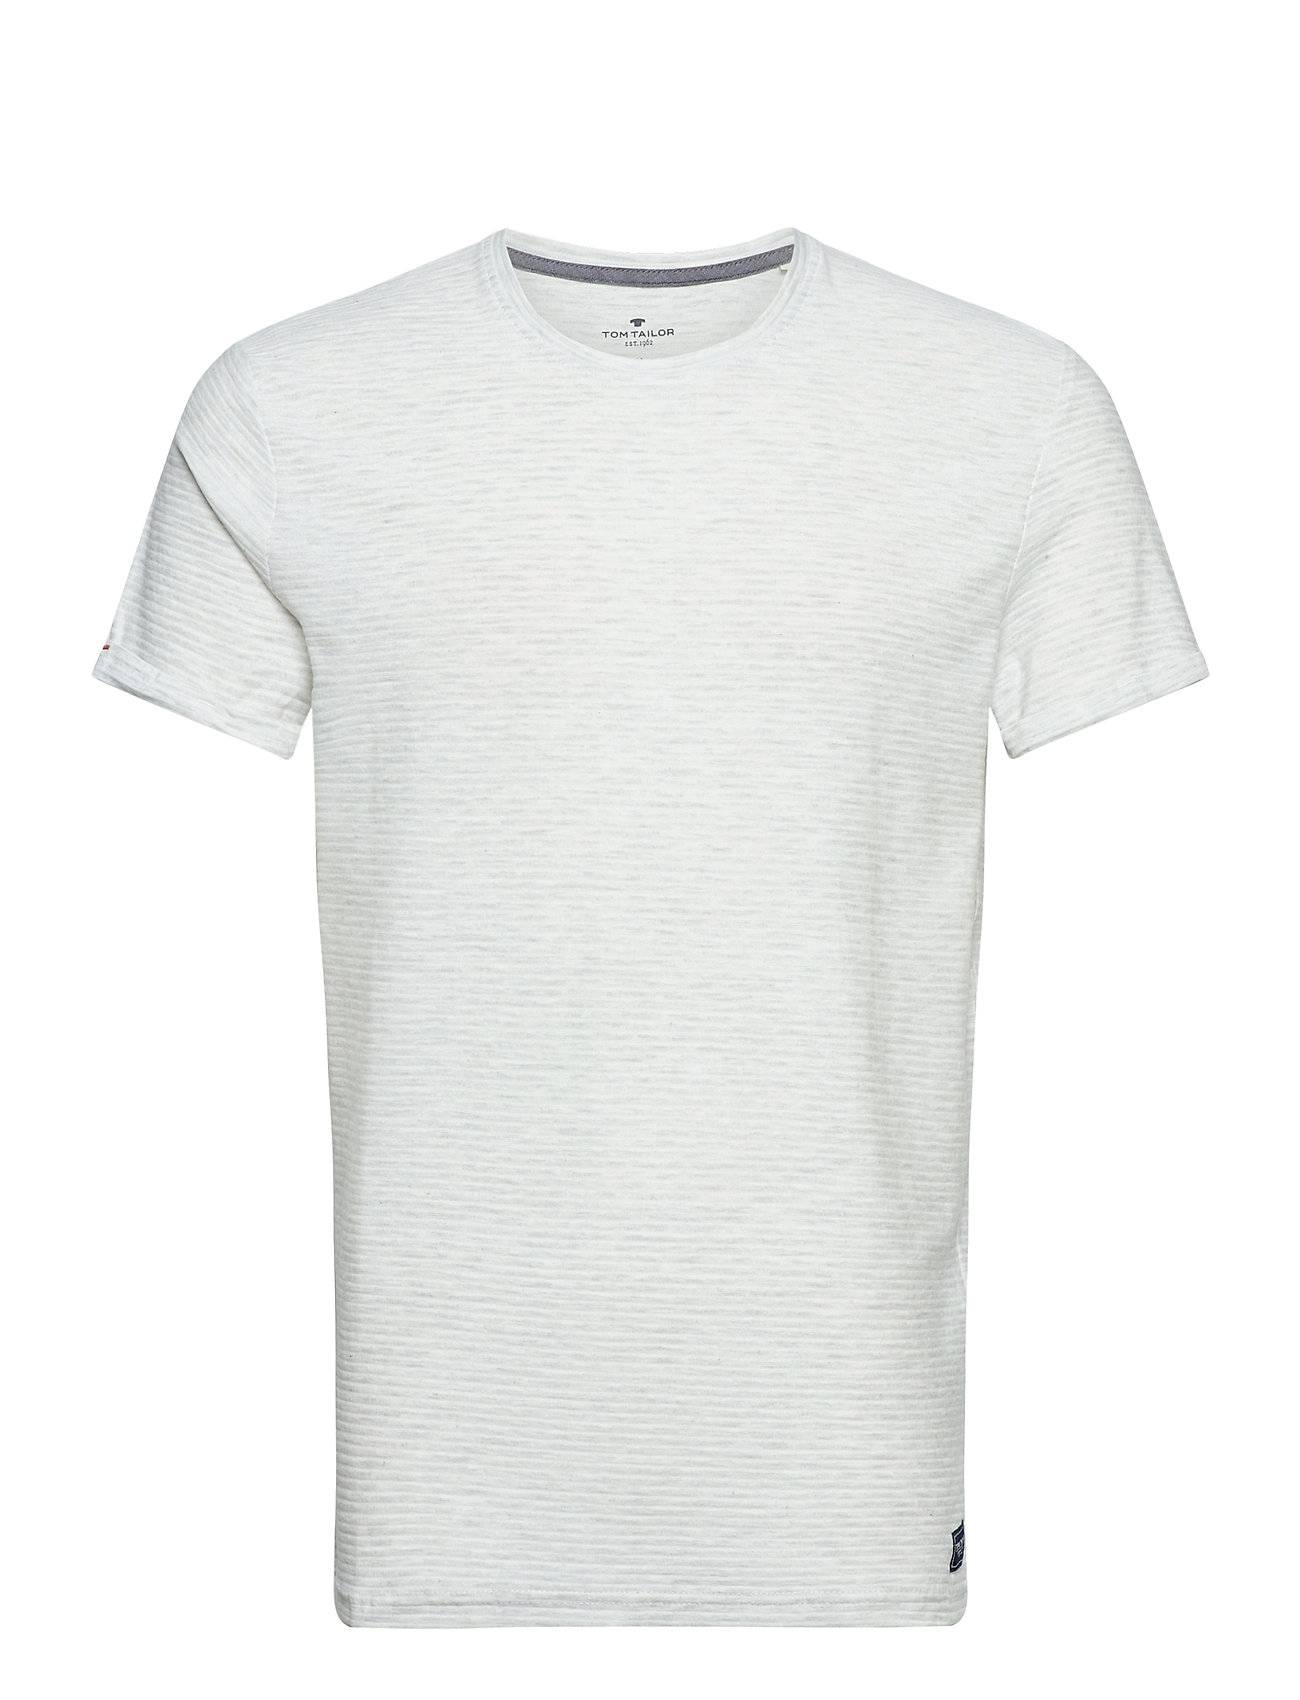 Tom Tailor T-Shirt With T-shirts Short-sleeved Valkoinen Tom Tailor